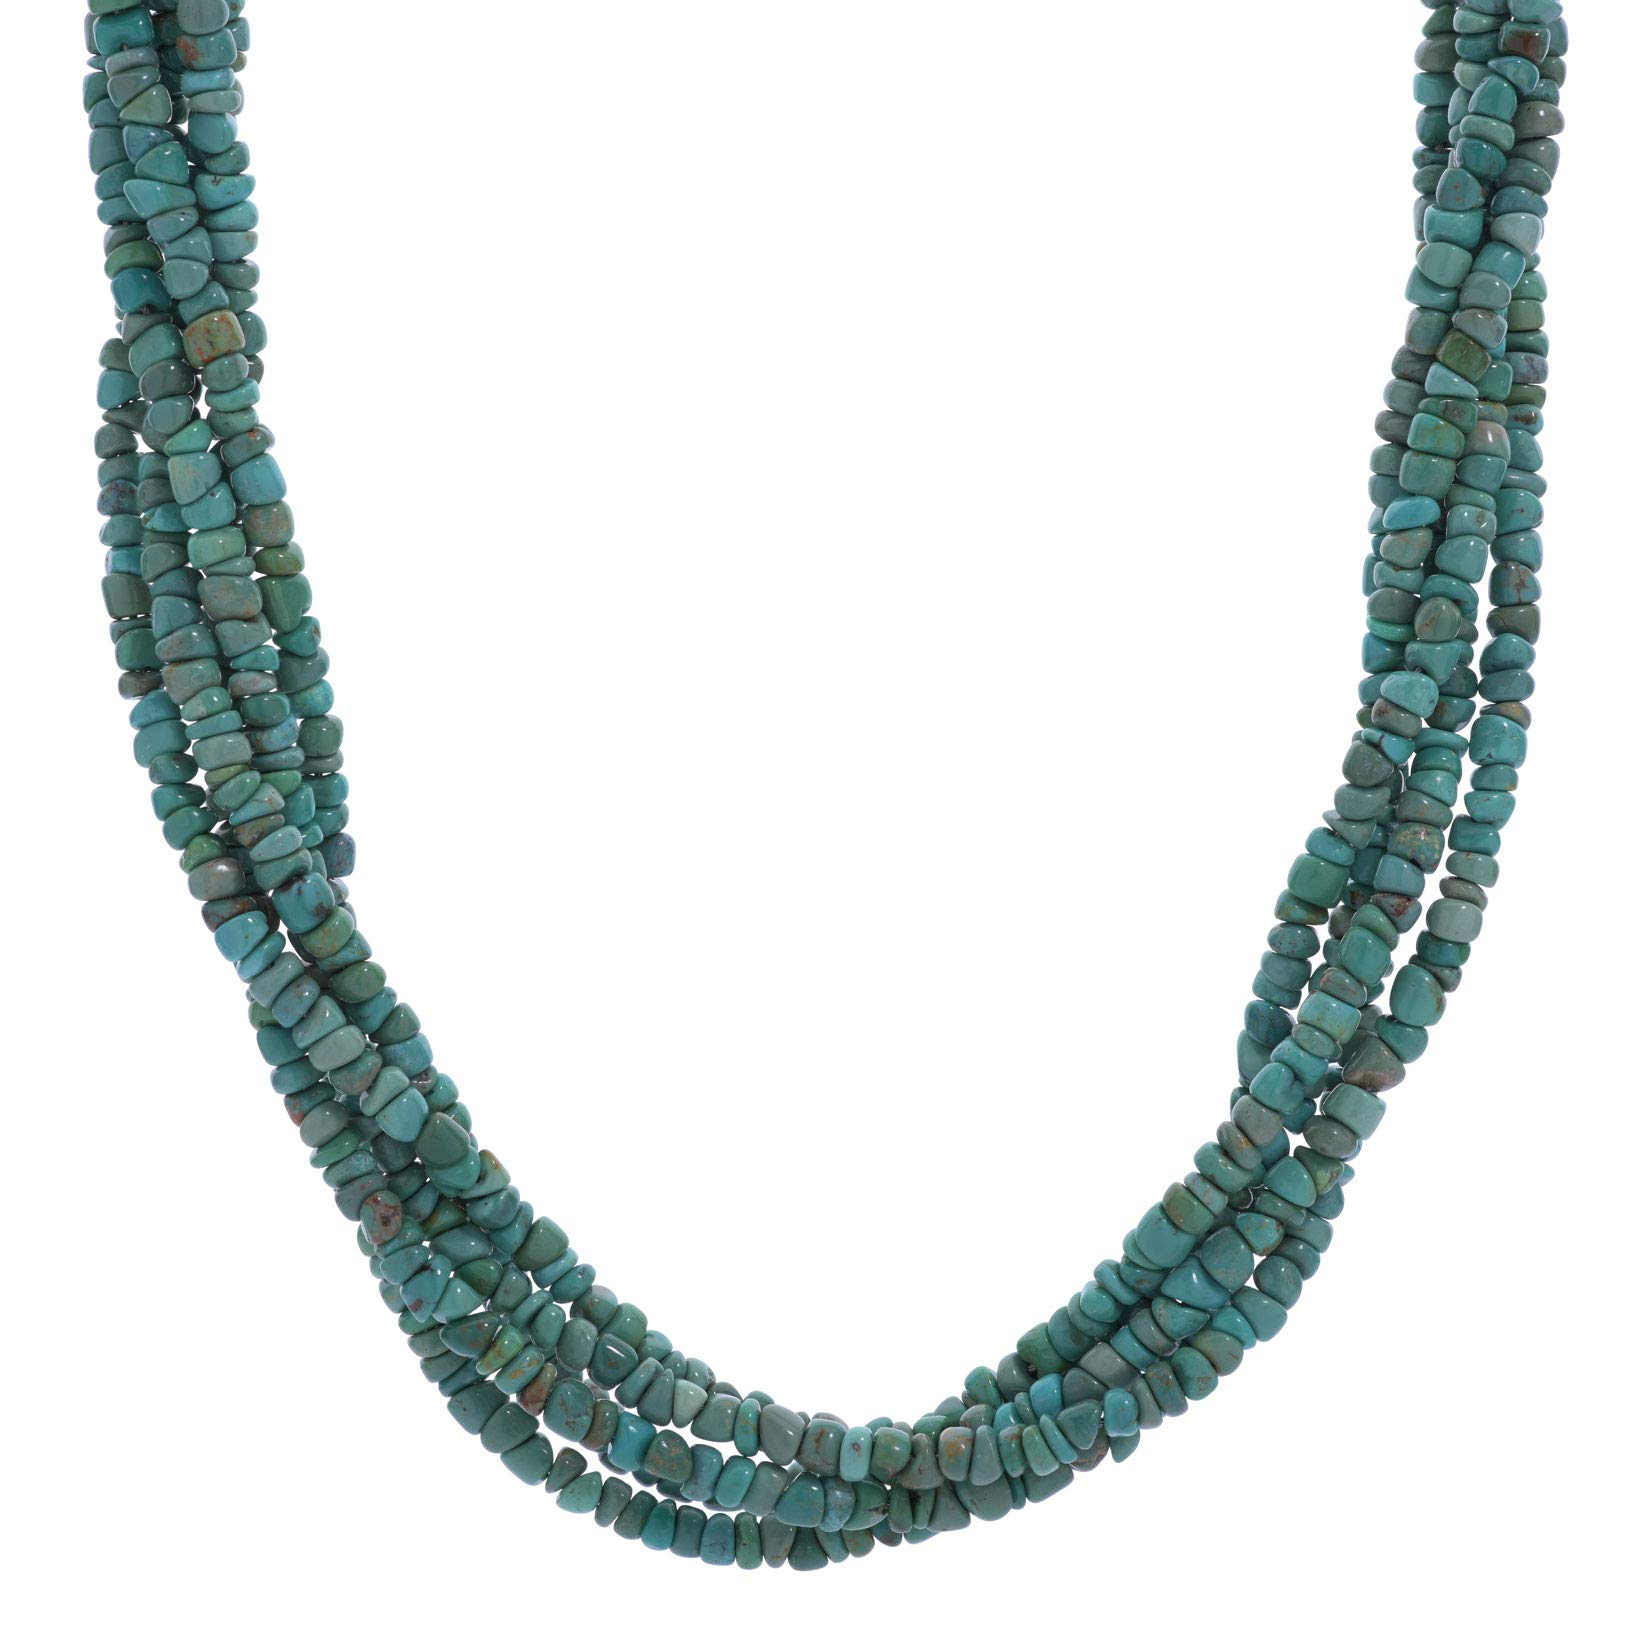 American West Brass Green Turquoise Gemstone Bead 5-Strand Necklace 17 Inch